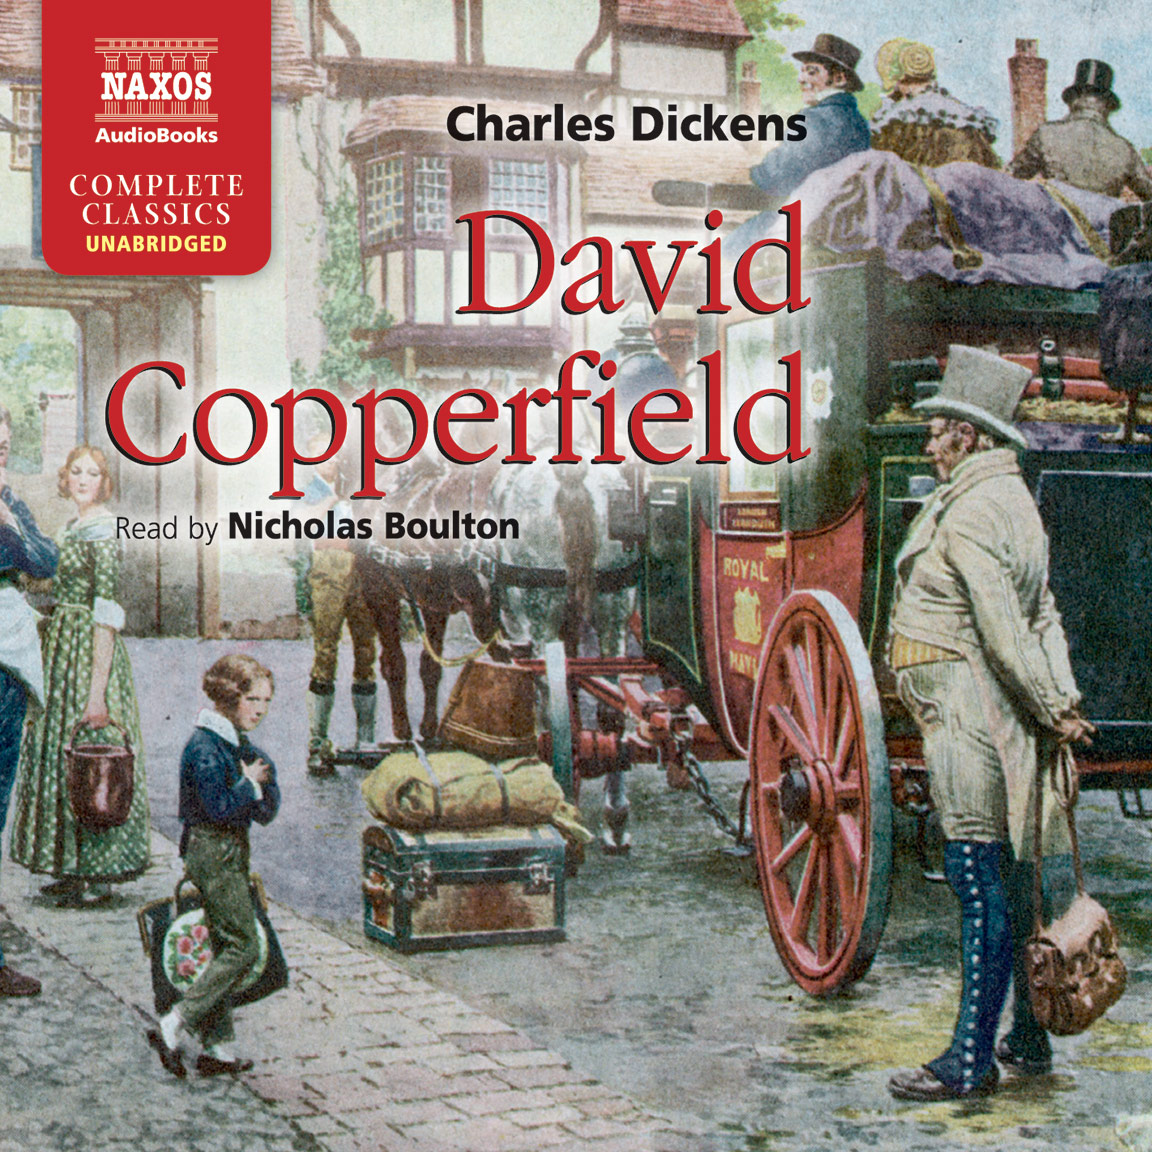 David Copperfield (unabridged)